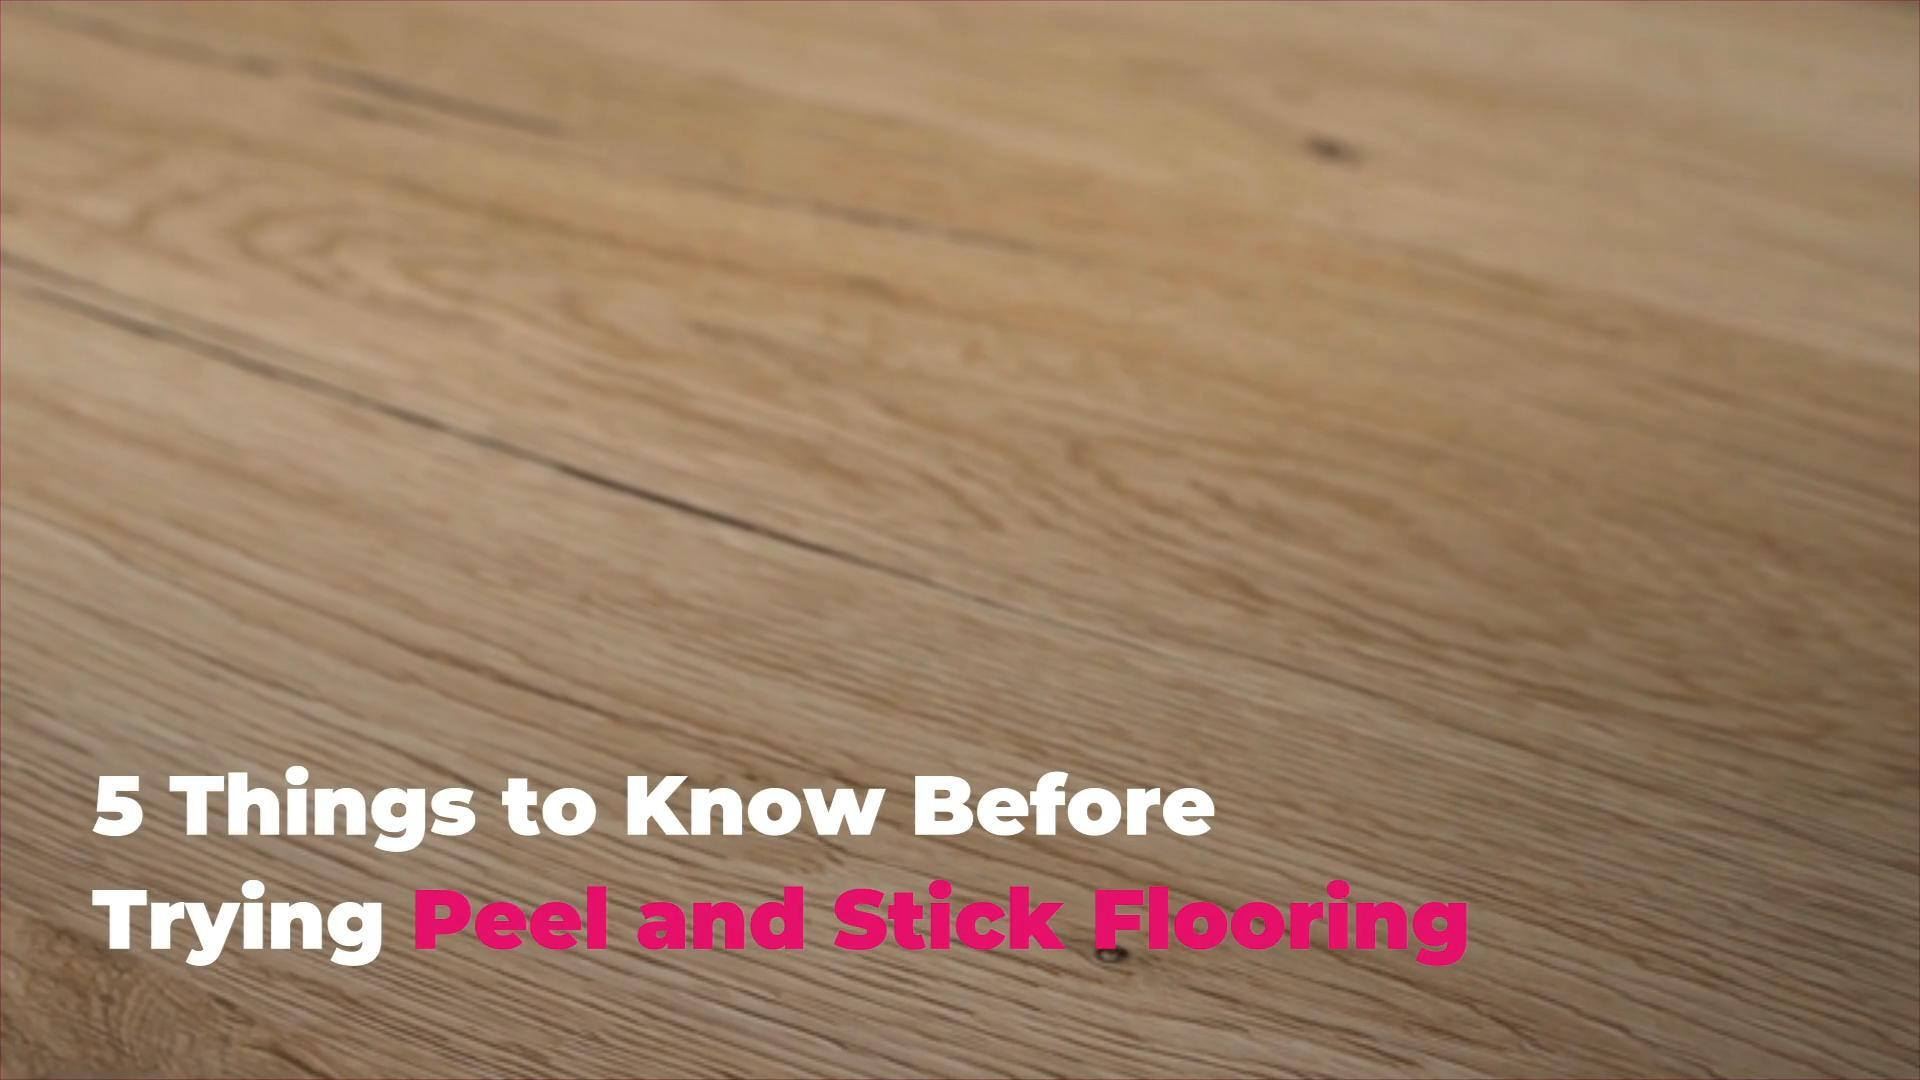 5 things to know before trying peel and stick flooring